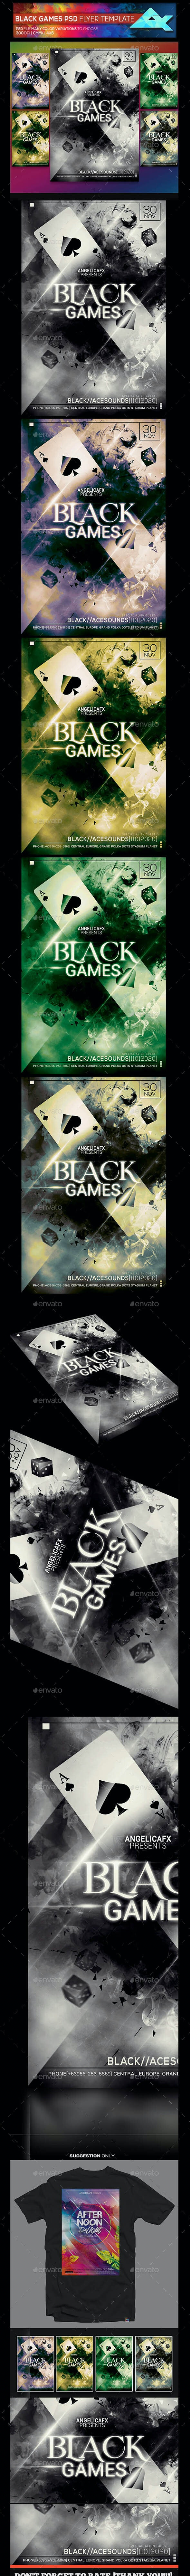 Black Games Photoshop Flyer Poster Template - Events Flyers